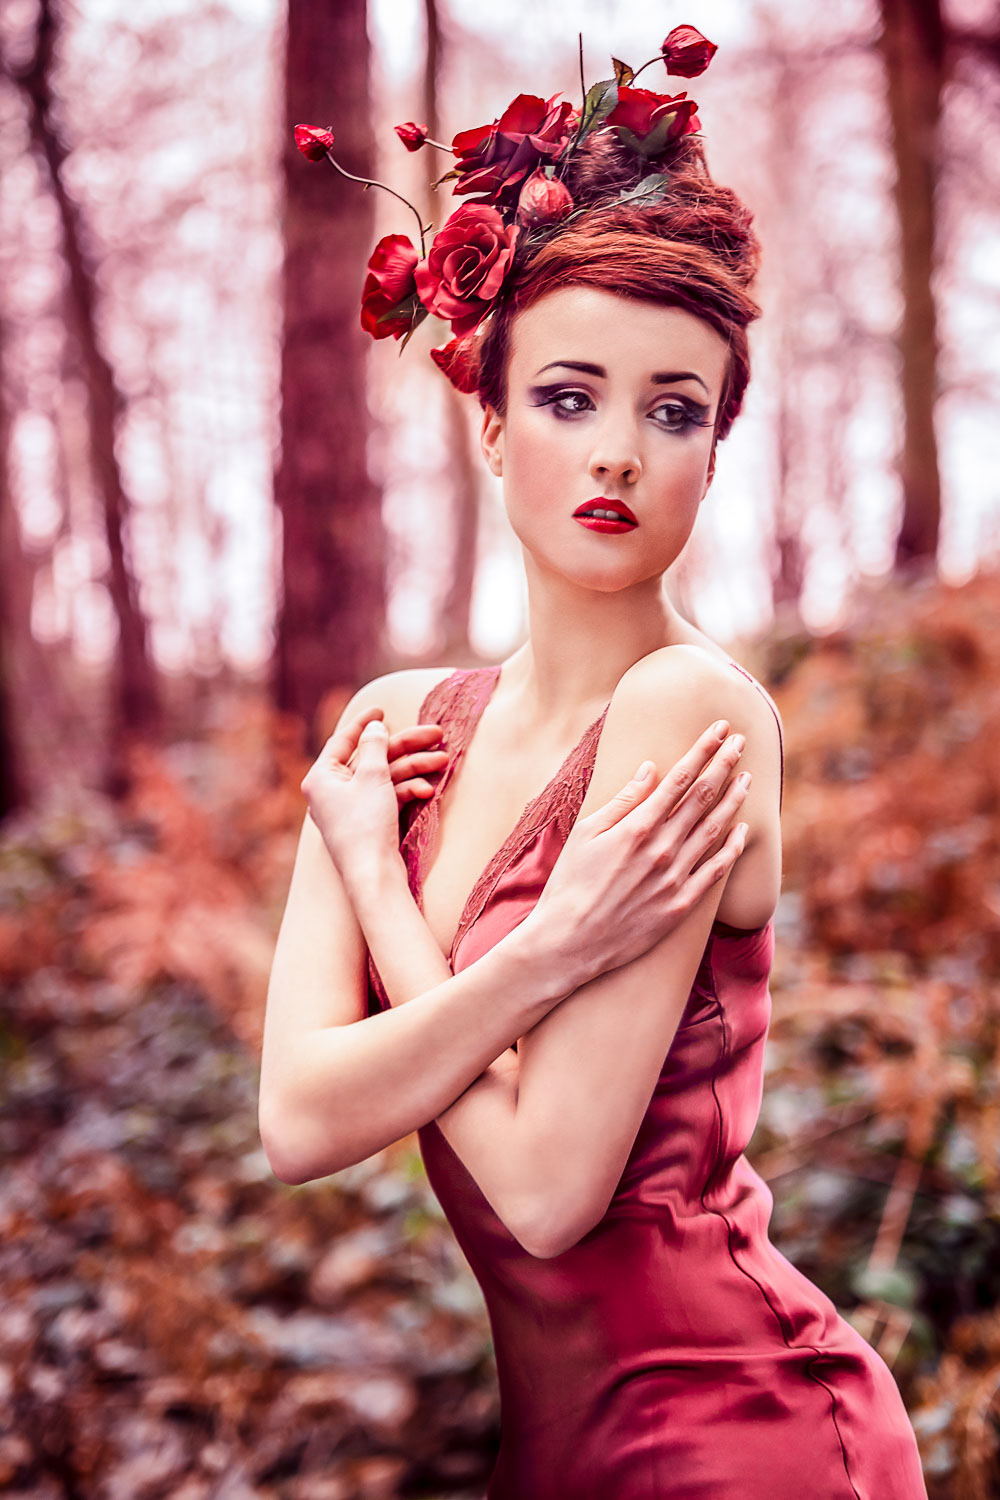 Female model dressed as a red rose wearing a red dress in an enchanted forest with a rose flower headpiece